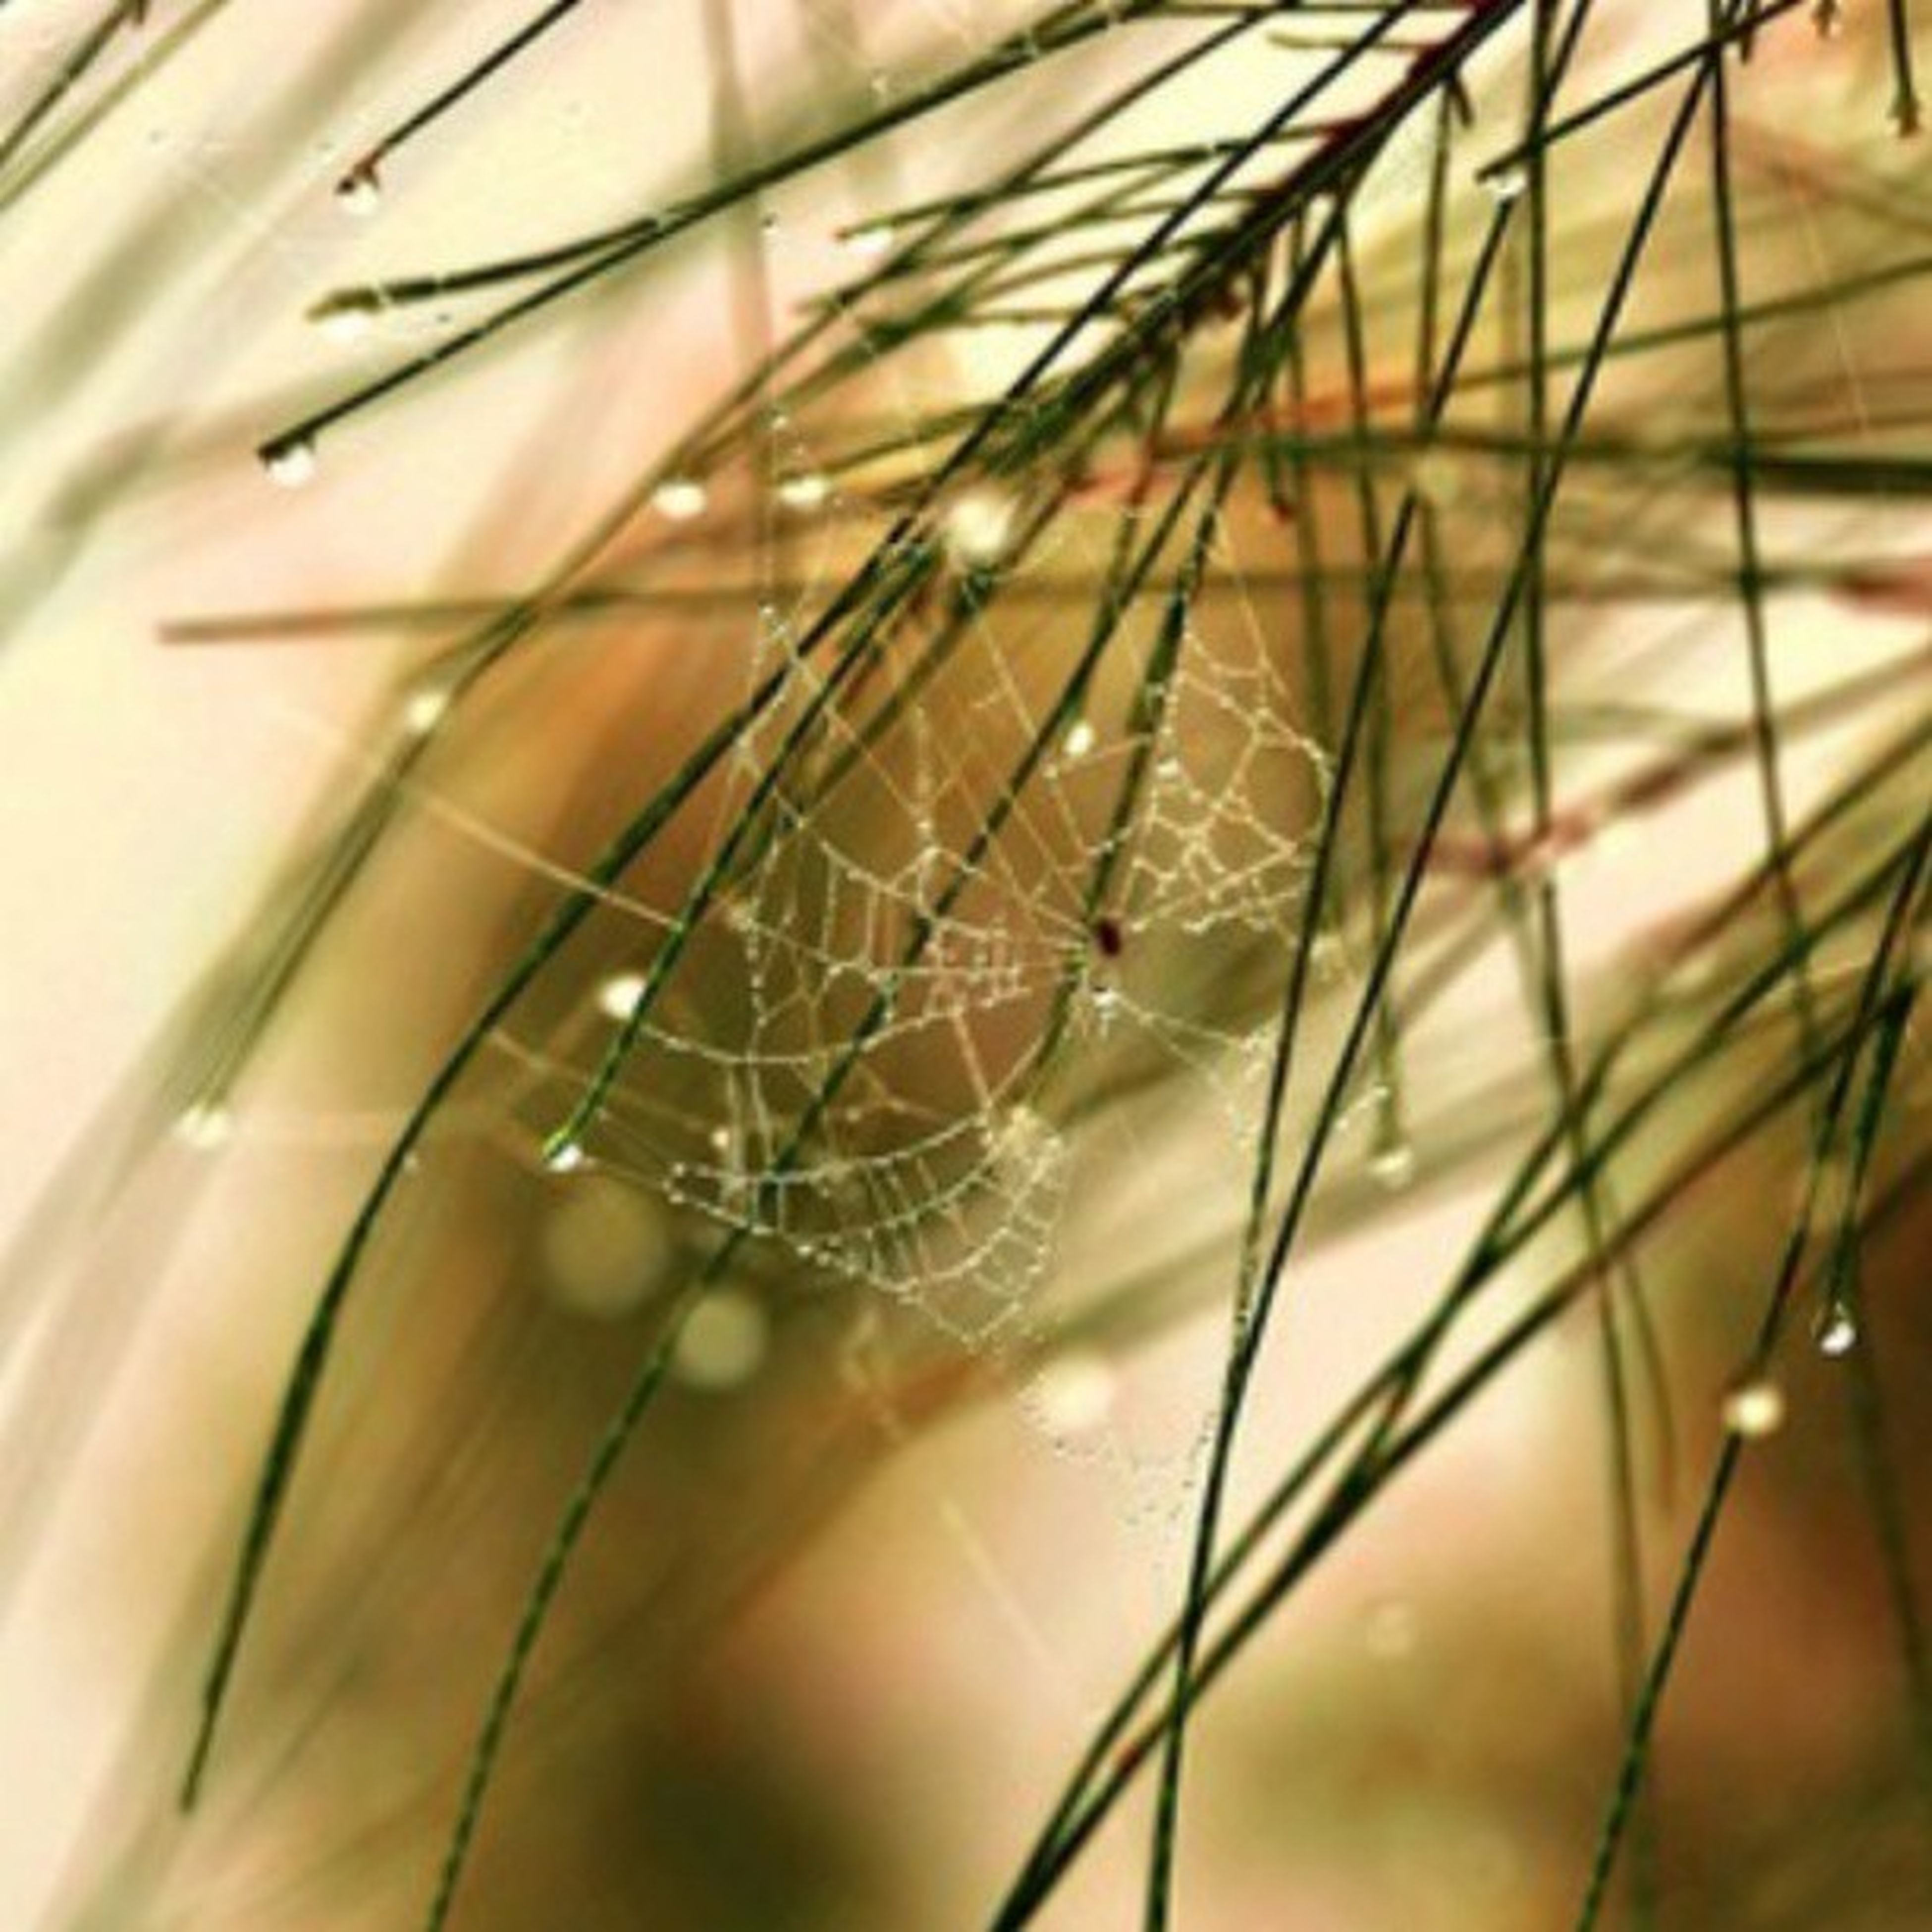 close-up, drop, plant, focus on foreground, growth, nature, water, fragility, spider web, wet, selective focus, dew, grass, stem, blade of grass, beauty in nature, freshness, leaf, day, outdoors